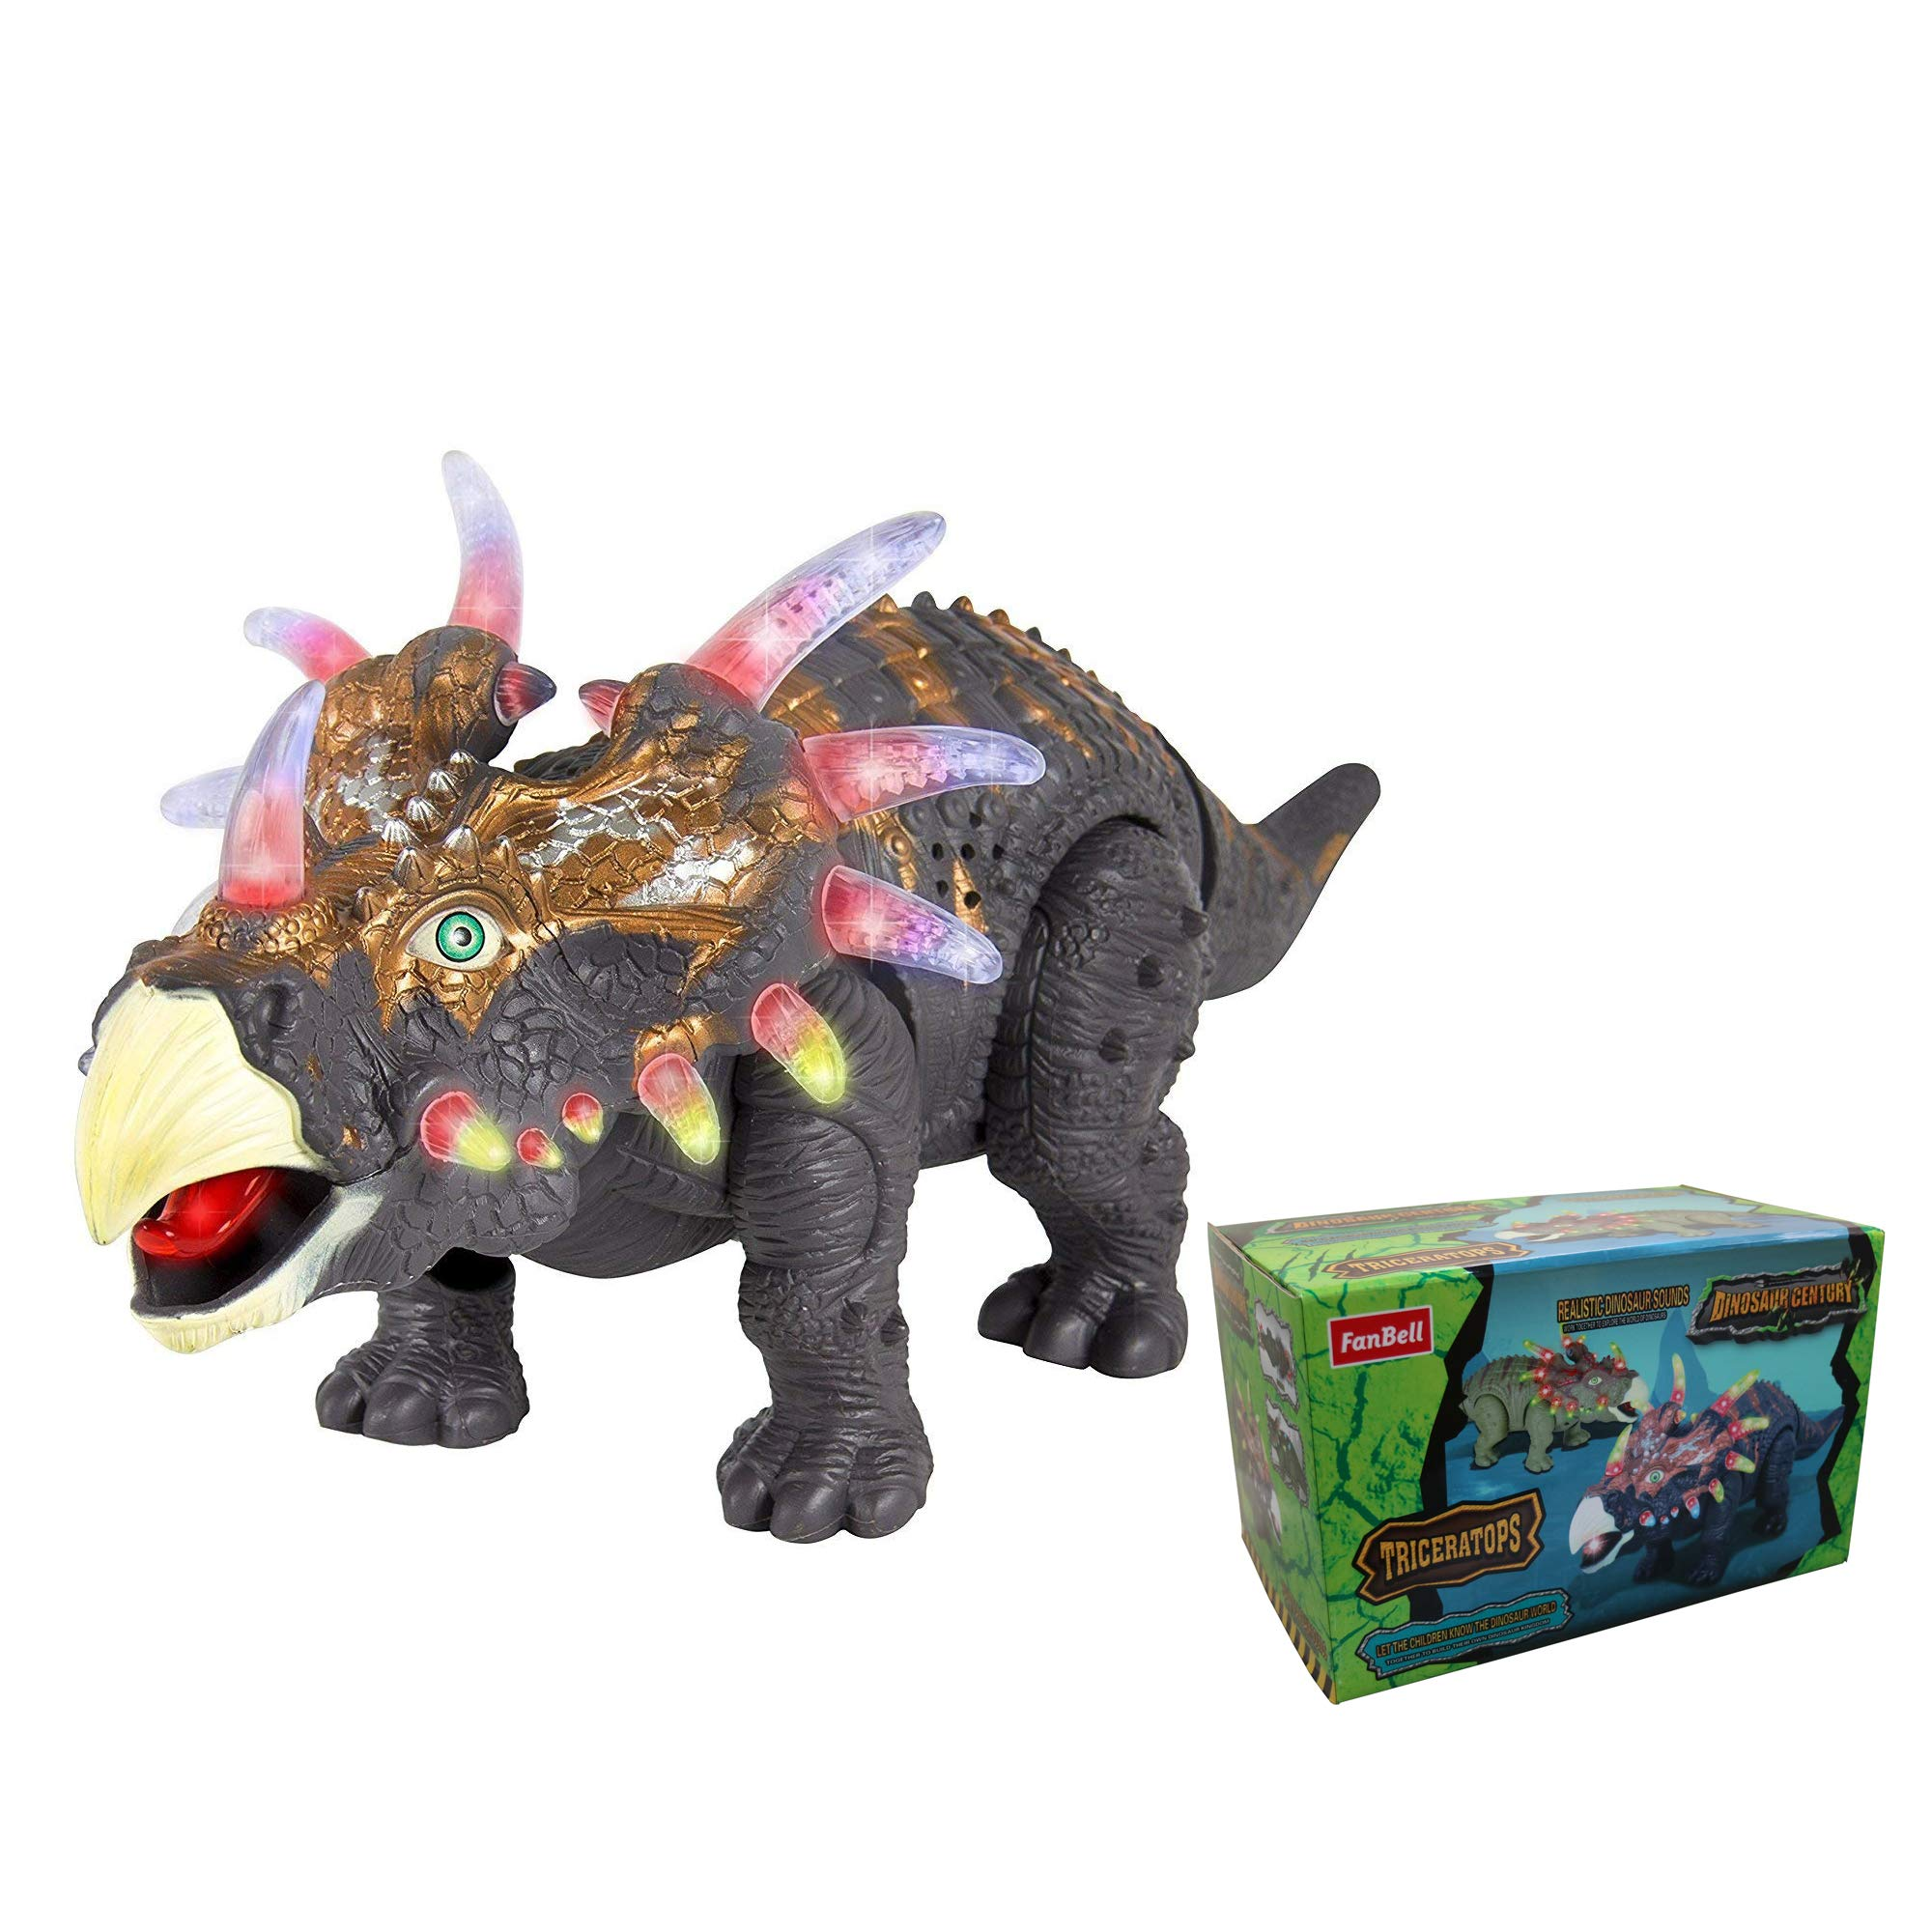 FanBell Walking Triceratops Dinosaur Toy Figure with Multicolor Lights & Loud Roar Sounds for for Boys and Girls Over 3 Years Old,Real Movement by FanBell (Image #1)